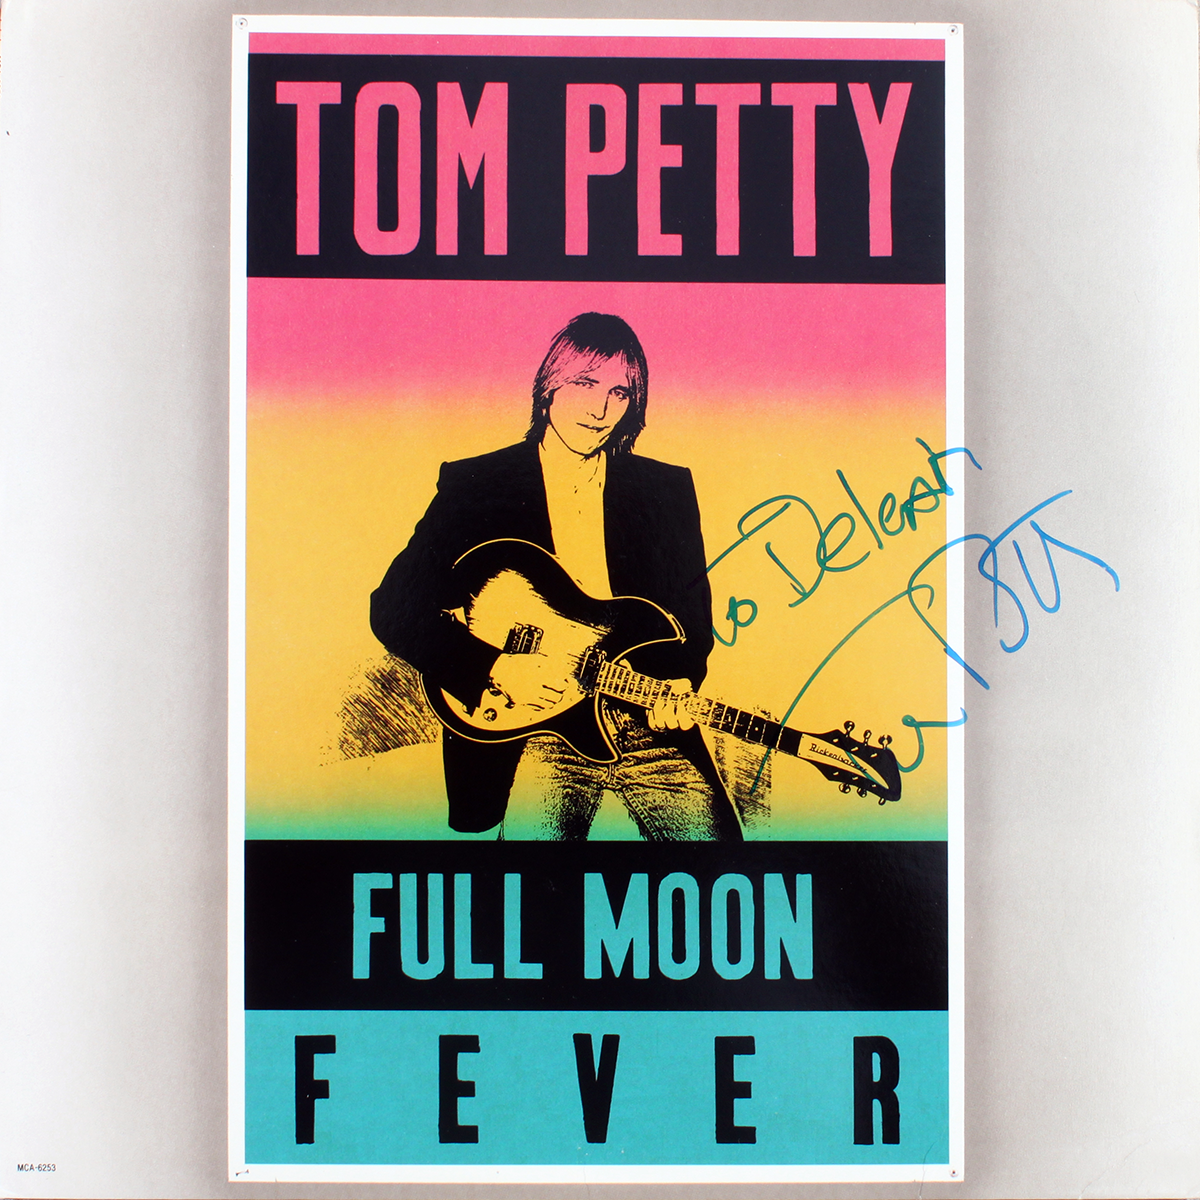 Tom Petty - Full Moon Fever LP #2